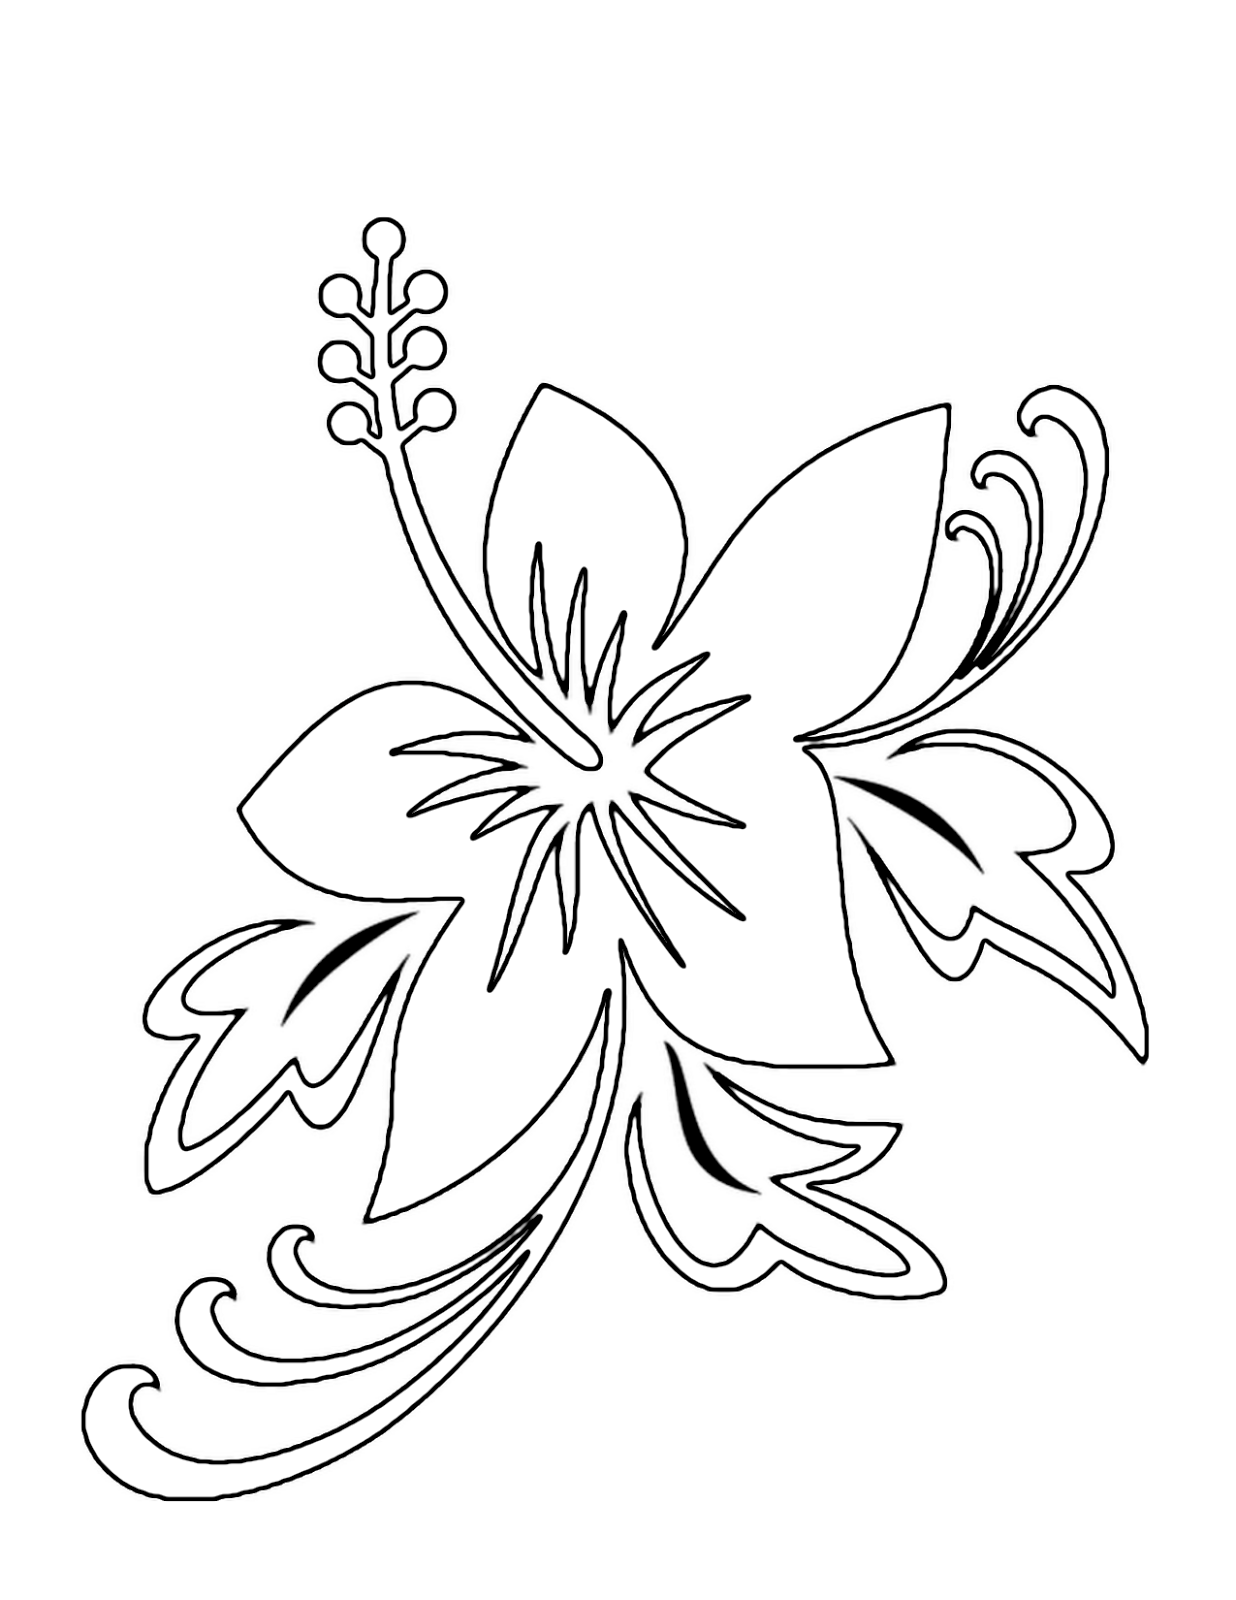 FLOWER coloring pages 46 free online coloring books  - free flower coloring pages to print